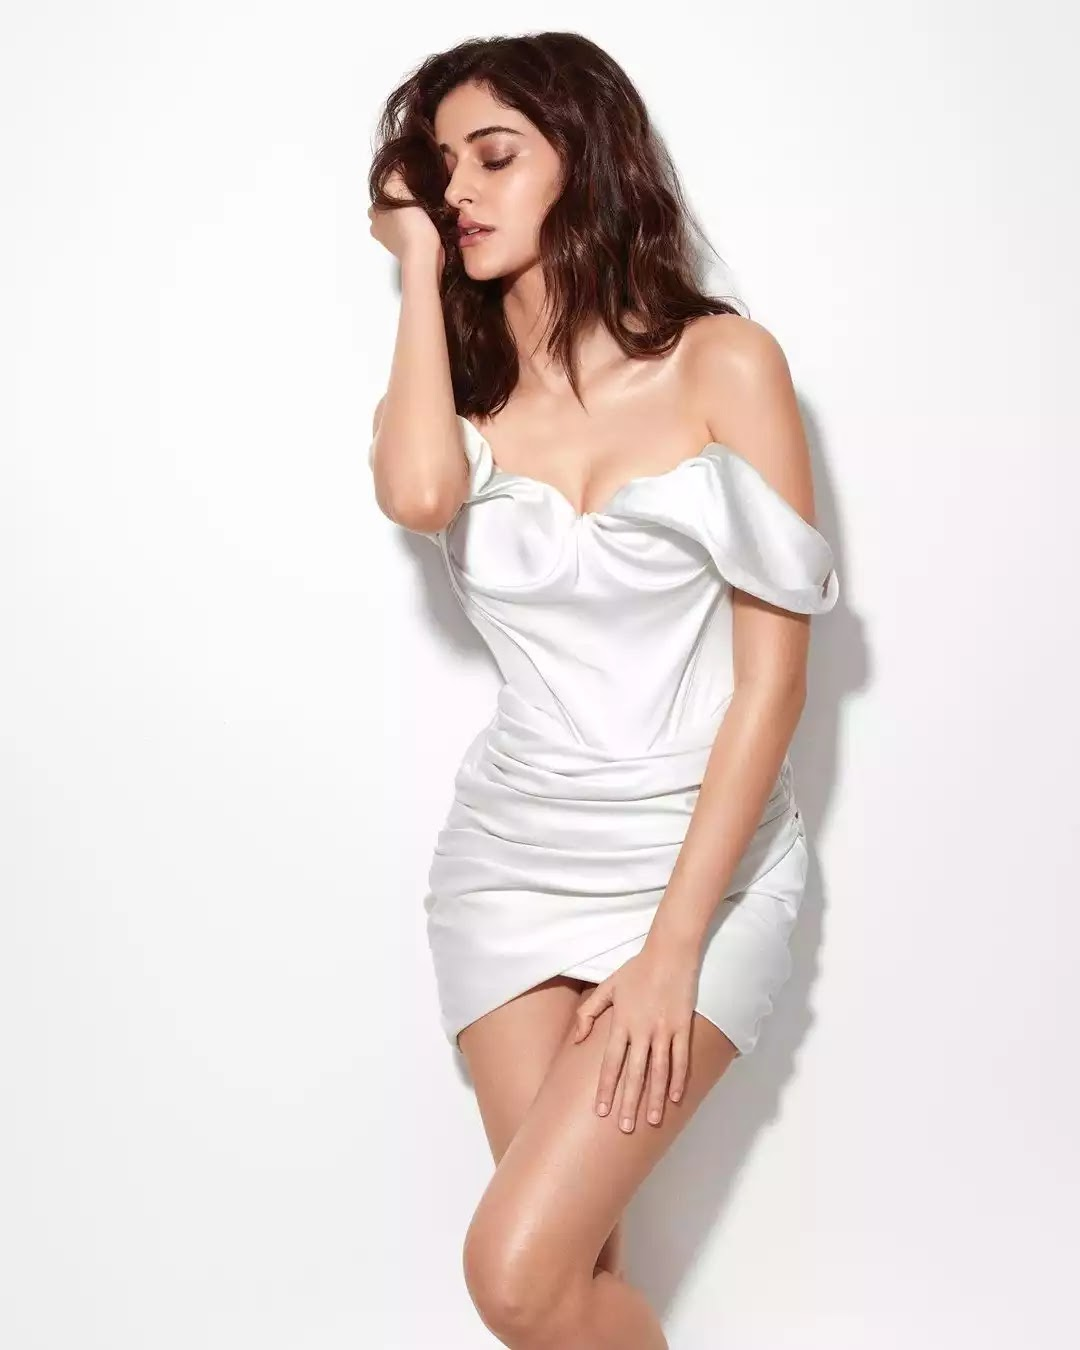 ananya-panday-hot-sexy-looks-in-white-off-shouldered-short-dress